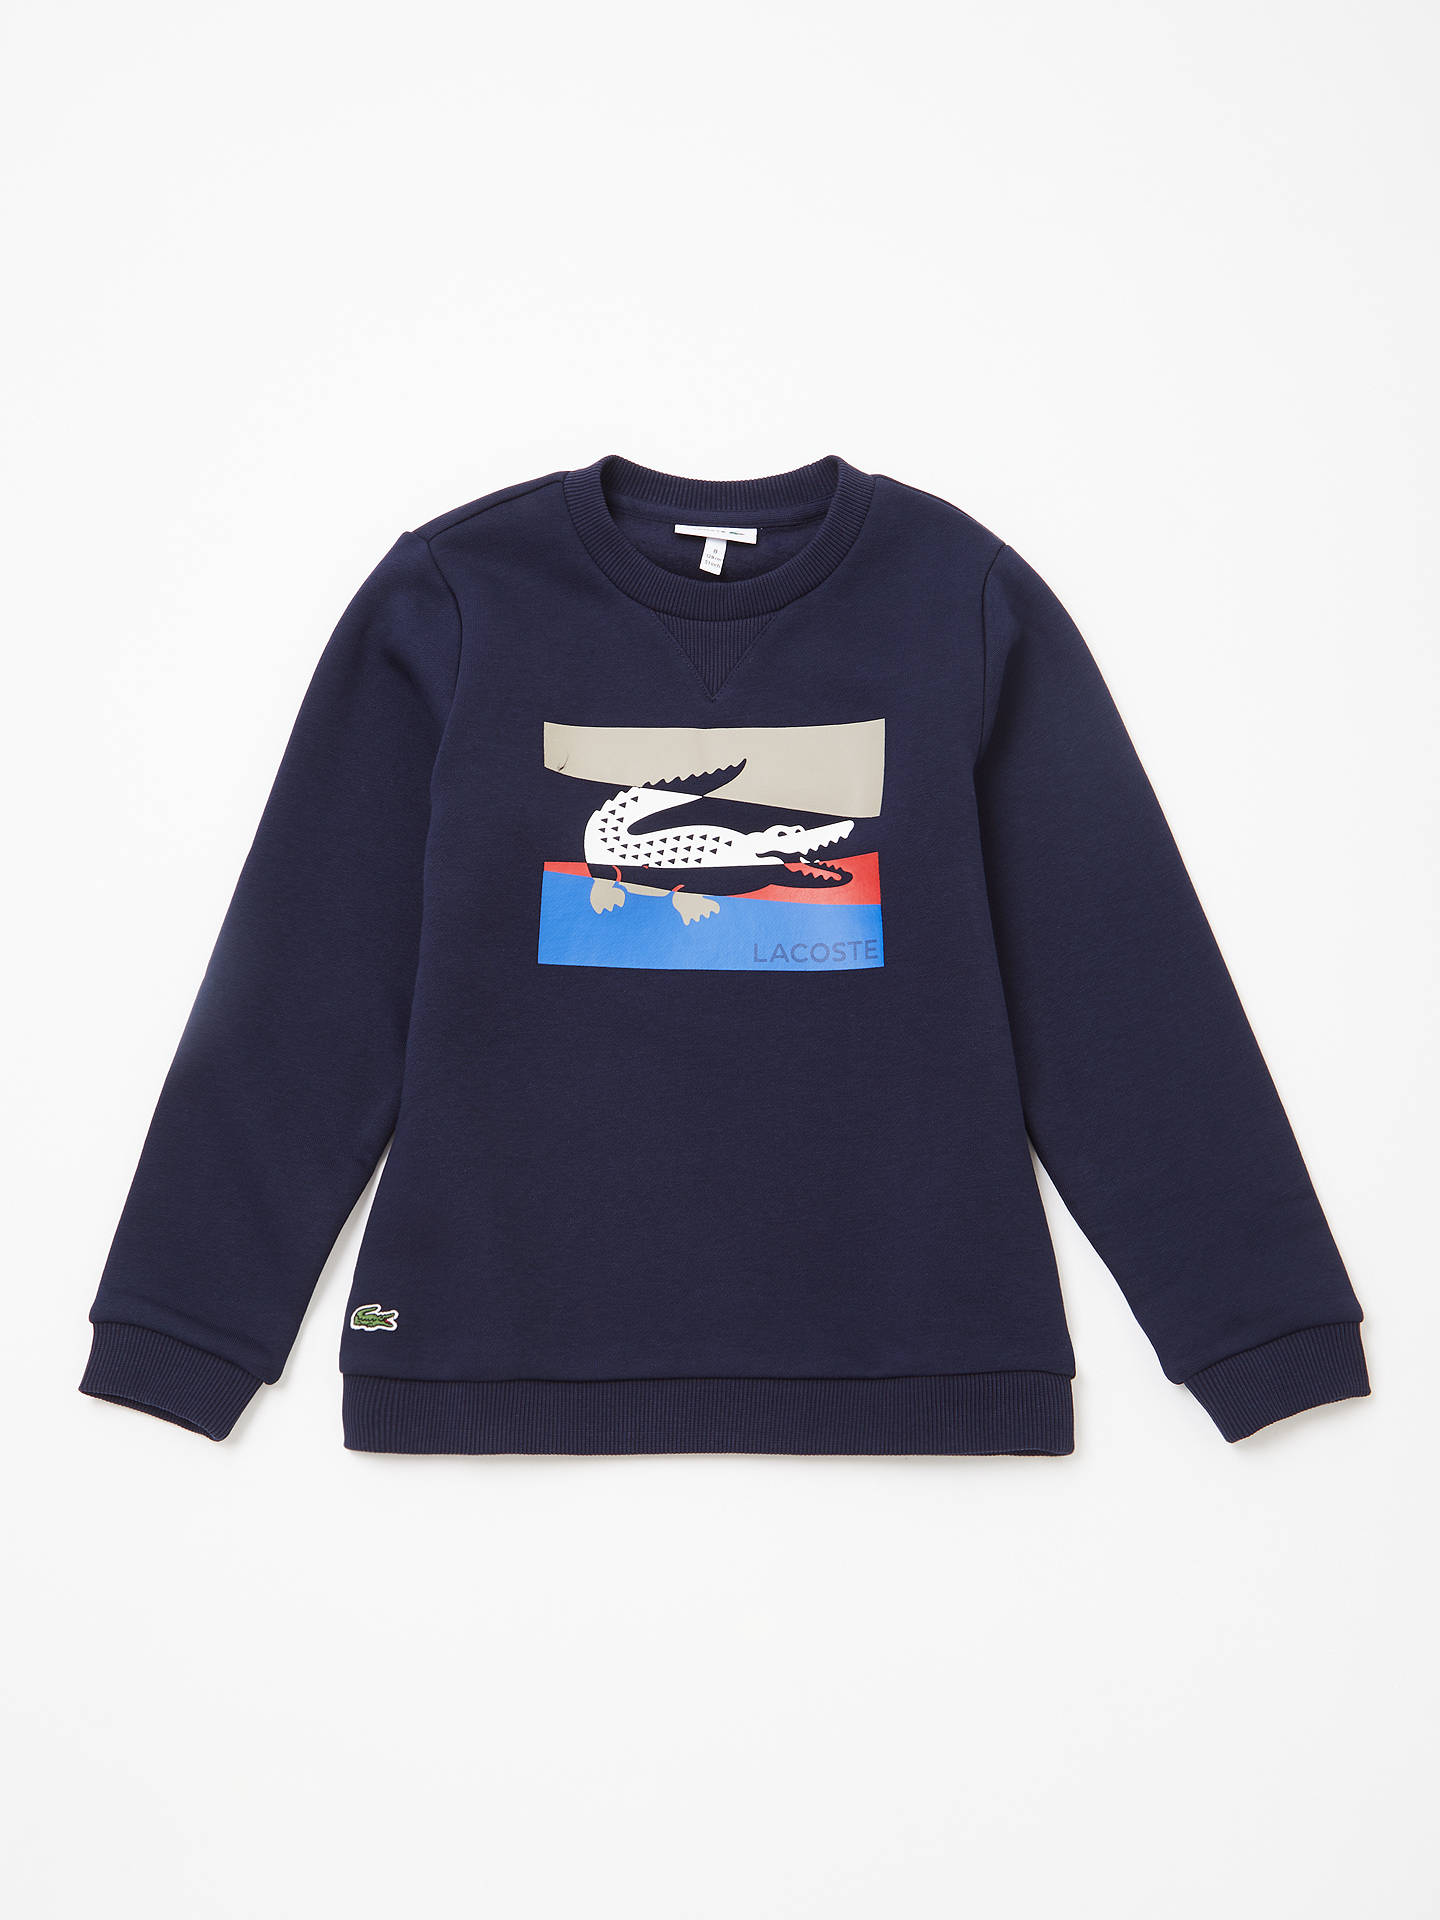 29889d4bee13 Buy Lacoste Boys  Logo Sweatshirt